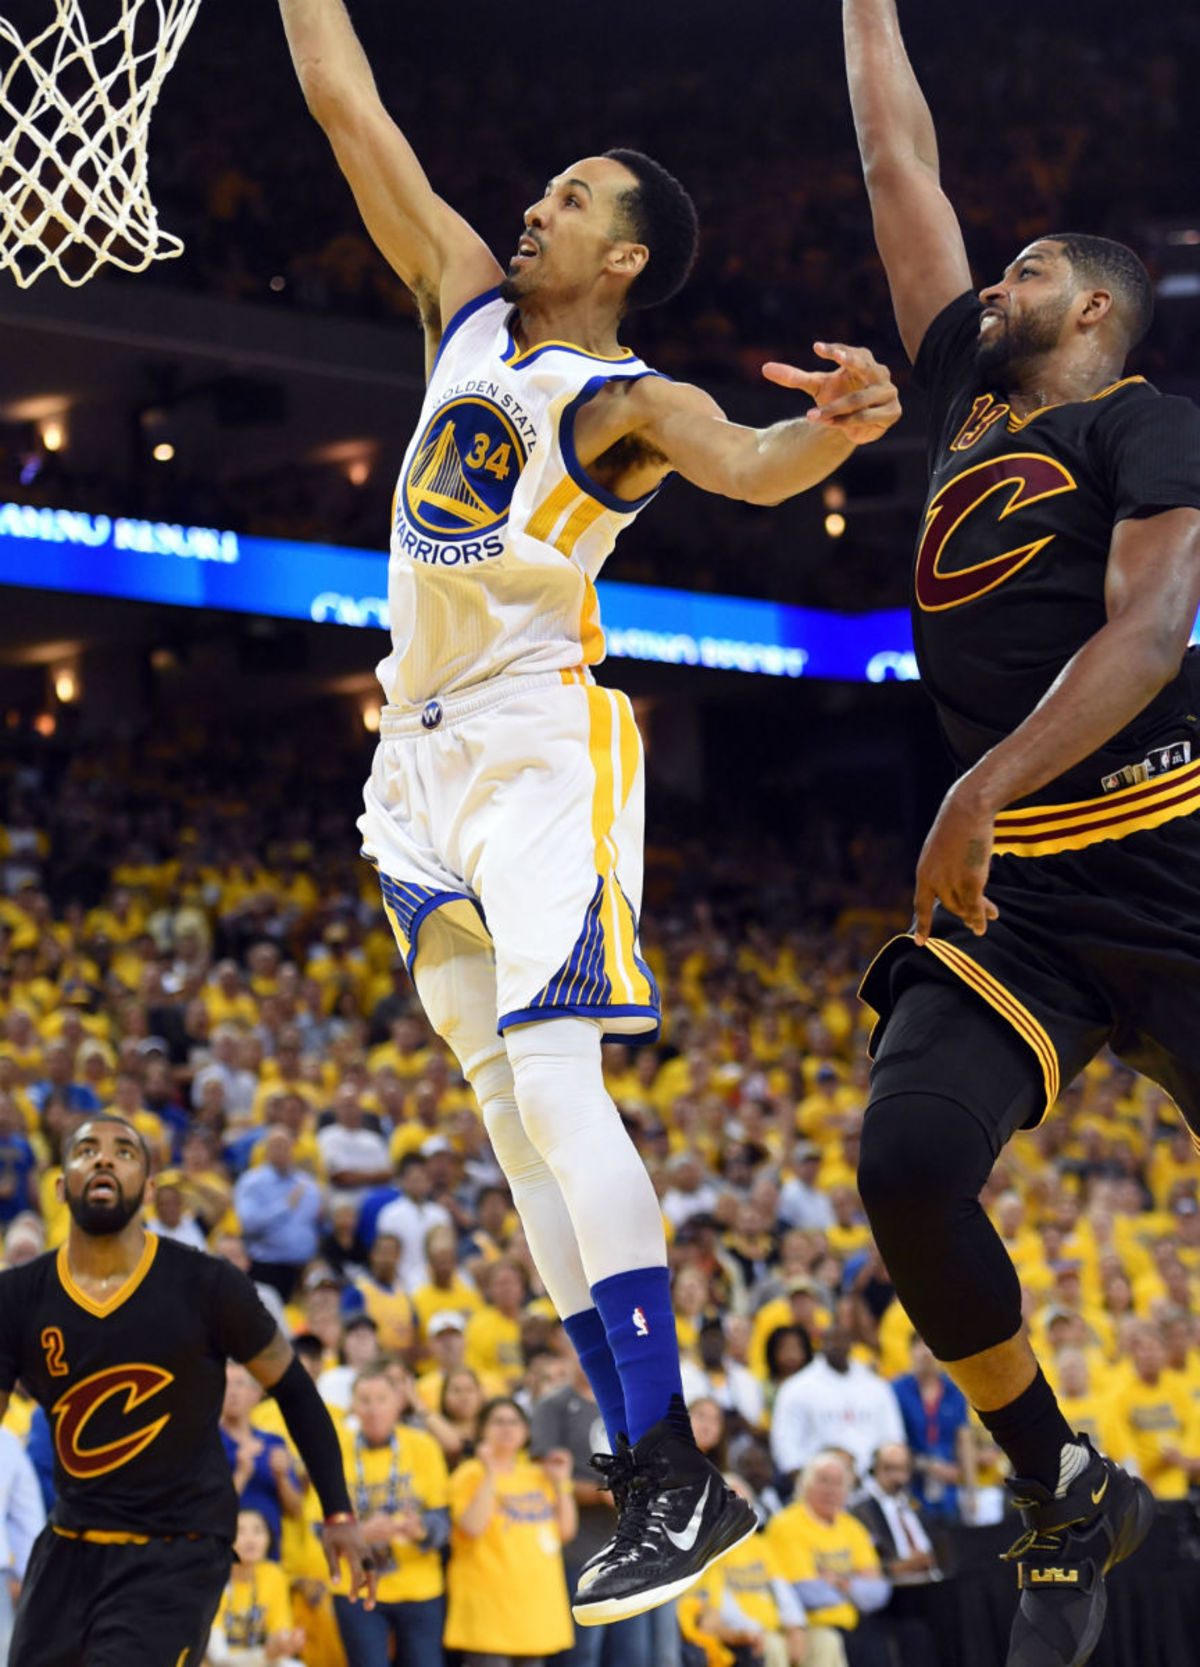 Shaun Livingston Wearing the Nike Hyperdunk 2014 in Game 7 - #SoleWatch: The Best Sneakers Worn ...